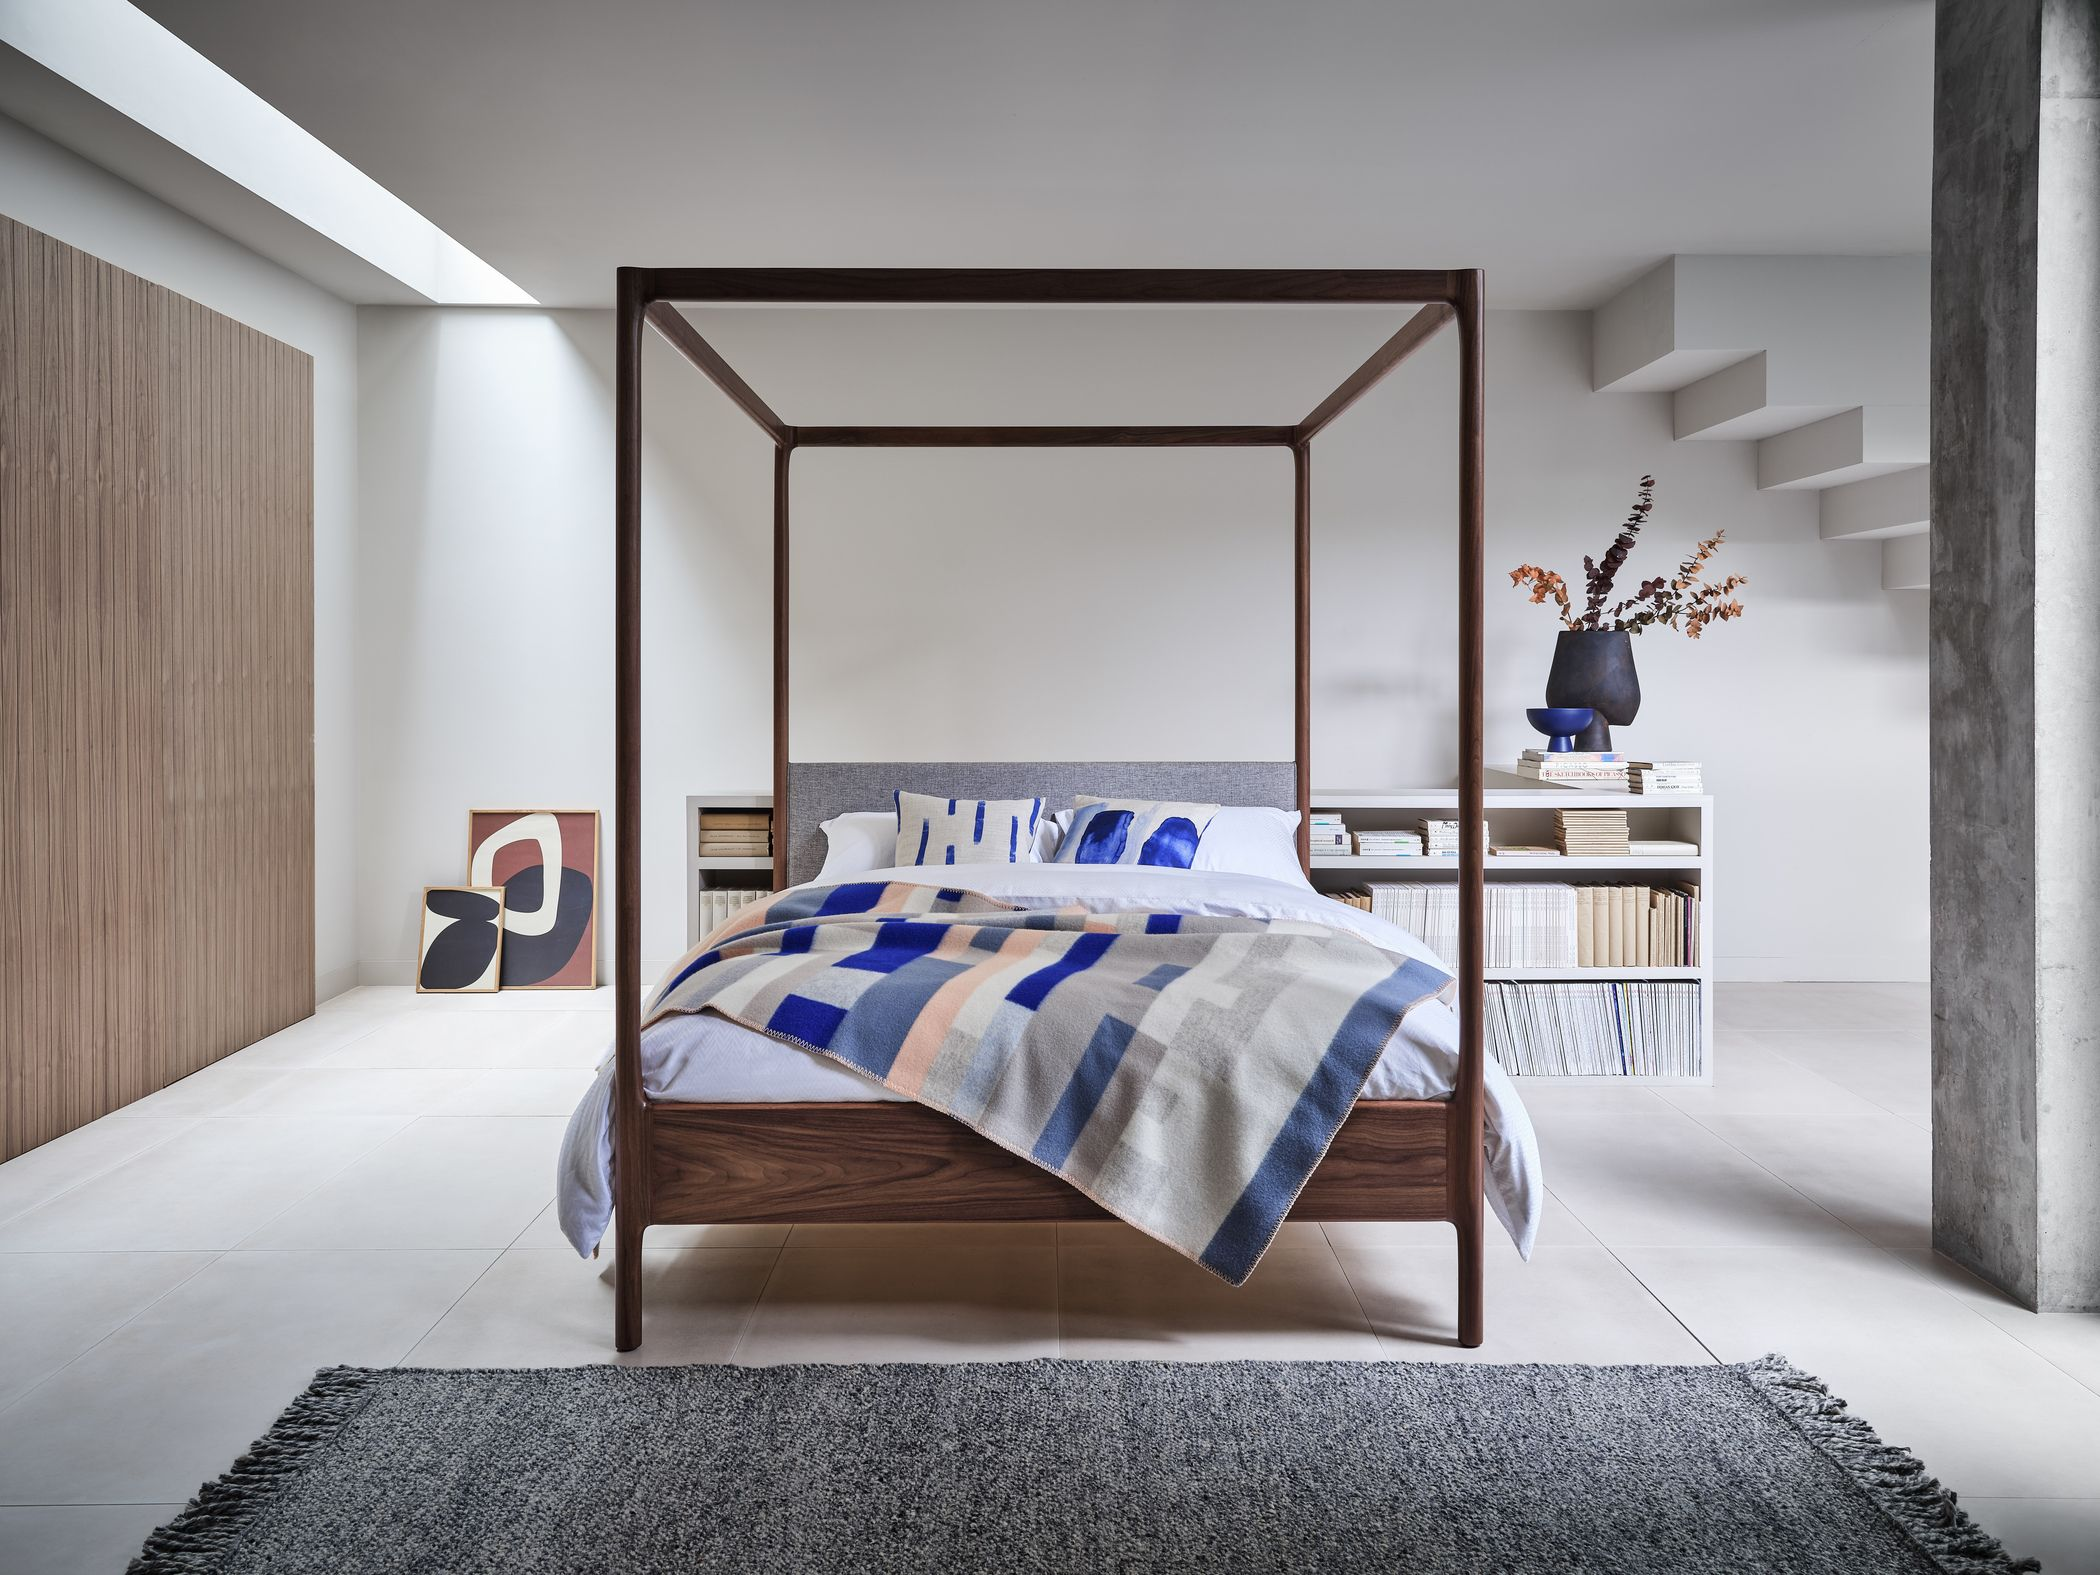 16 Of The Best Luxury Beds